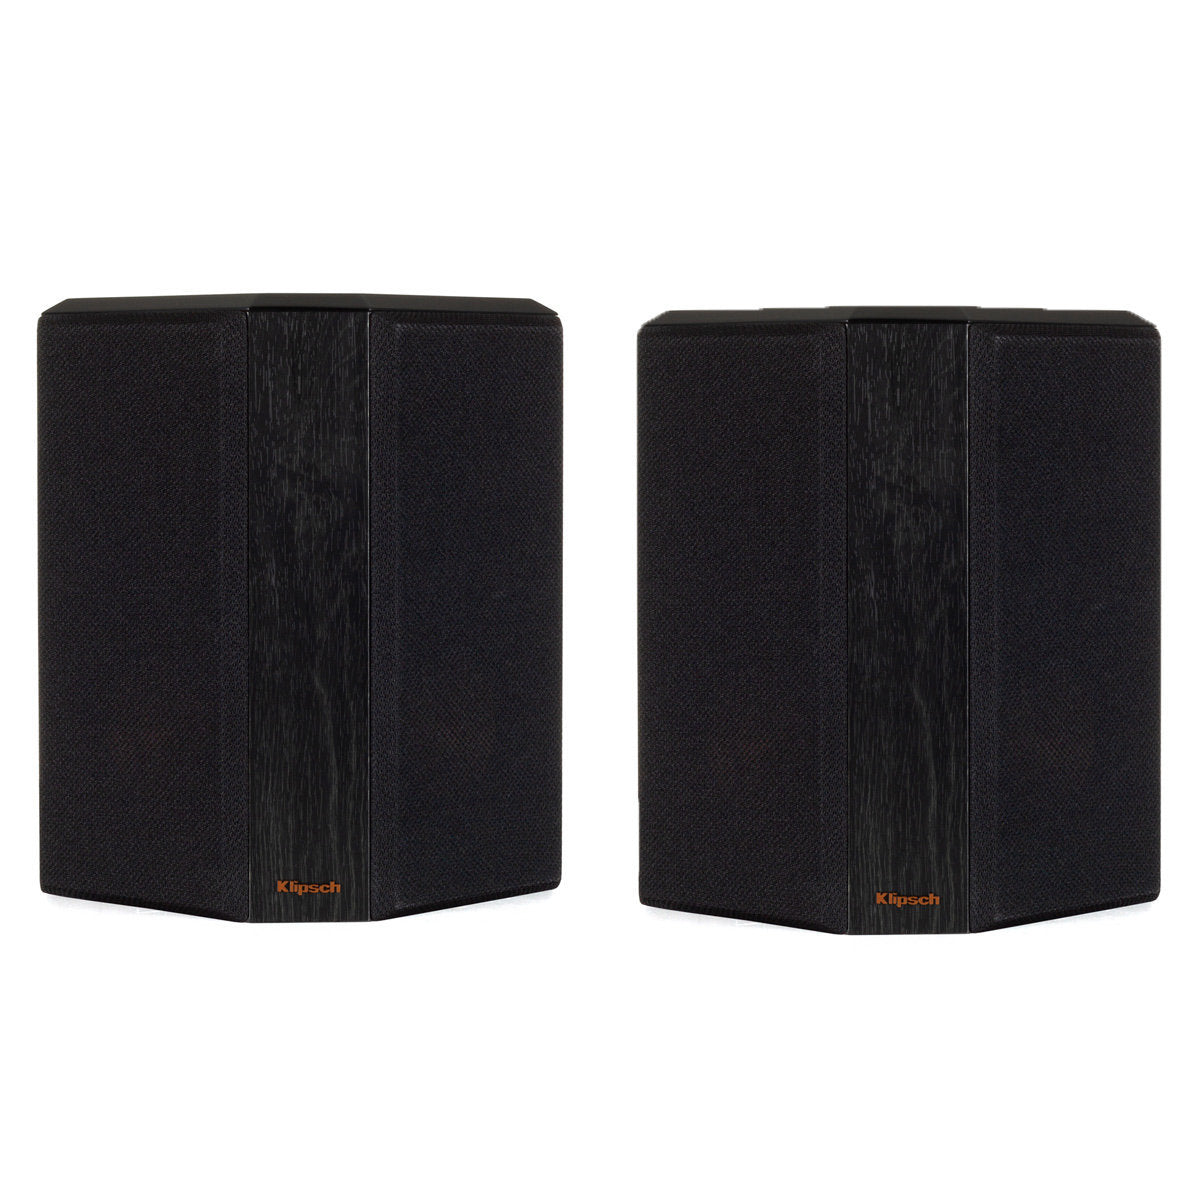 Klipsch RP-402S Reference Premiere Surround Speakers - Pair (Black)